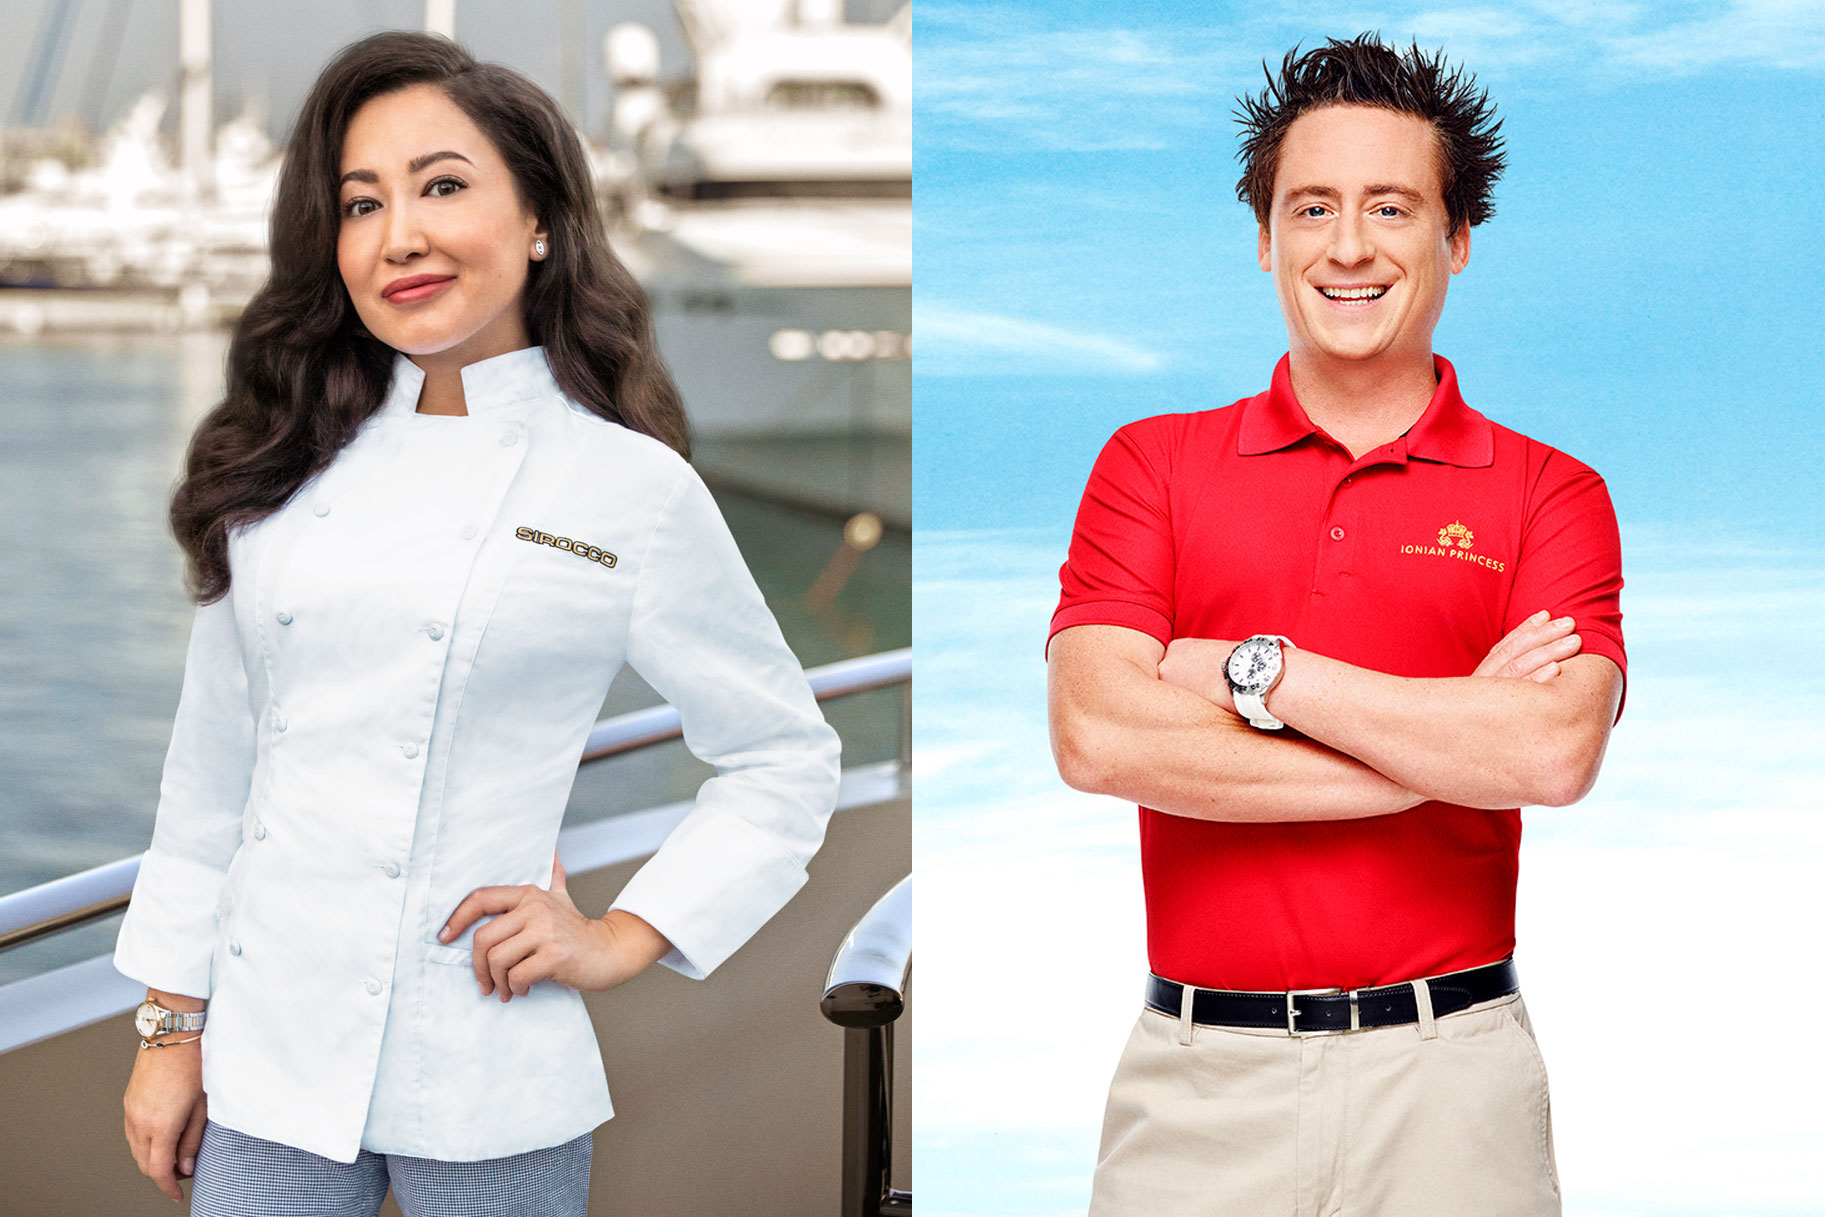 Ben Robinson Reacts to Chef Mila Kolomeitseva: Below Deck Med | The